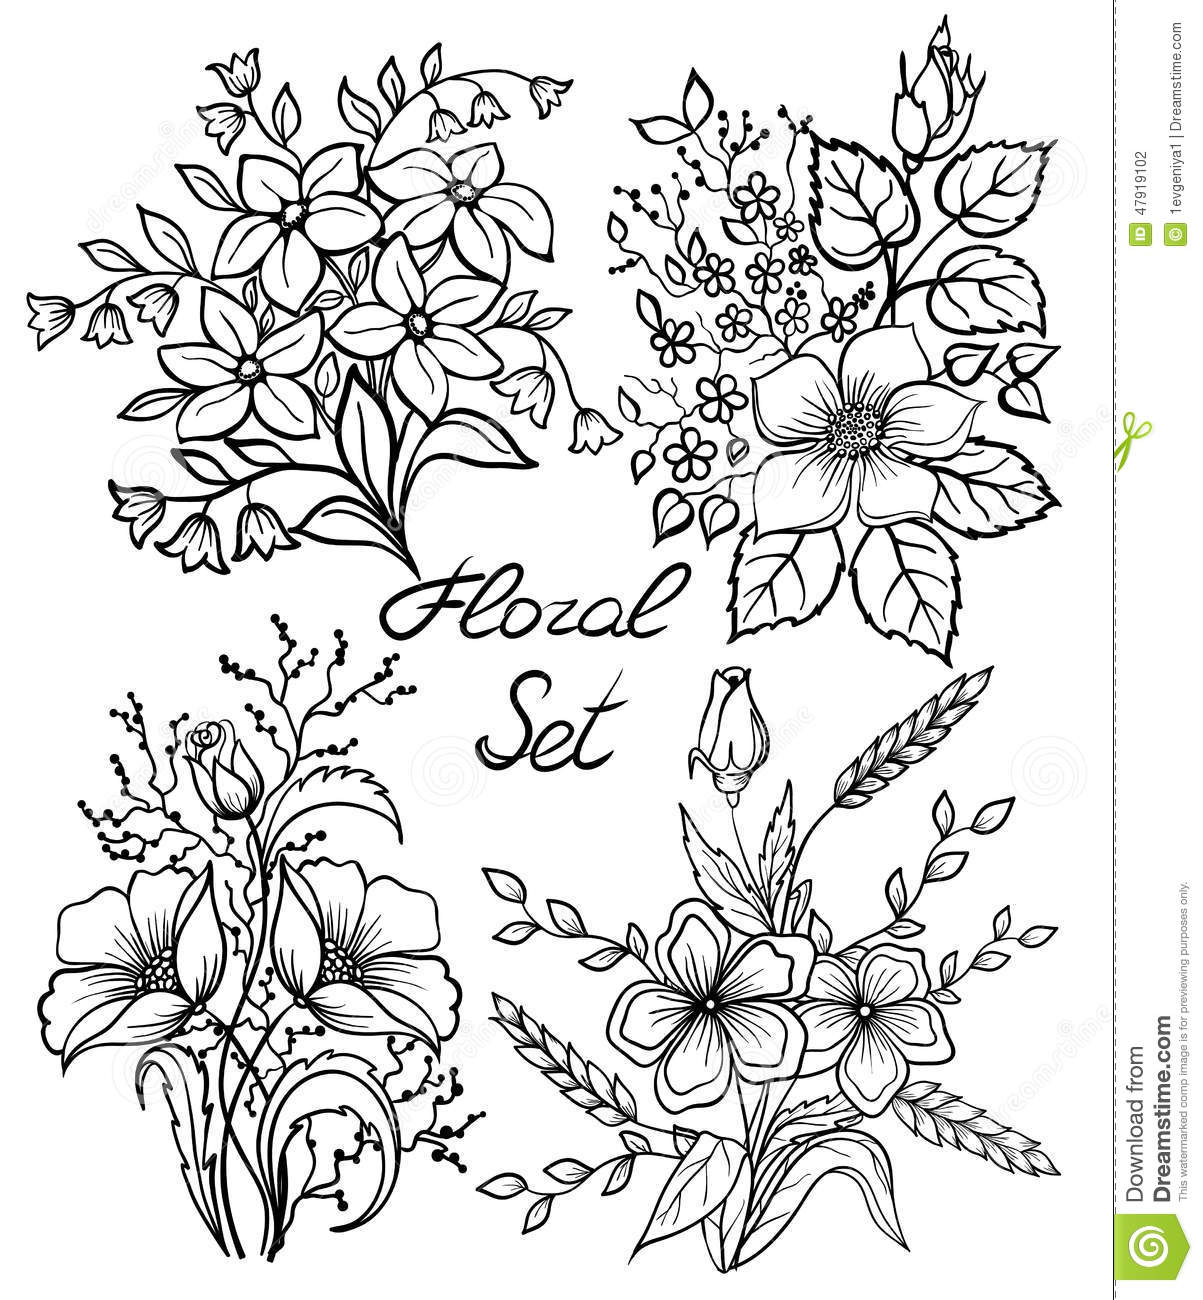 Vector black and white flowers set floral collection with leaves download comp mightylinksfo